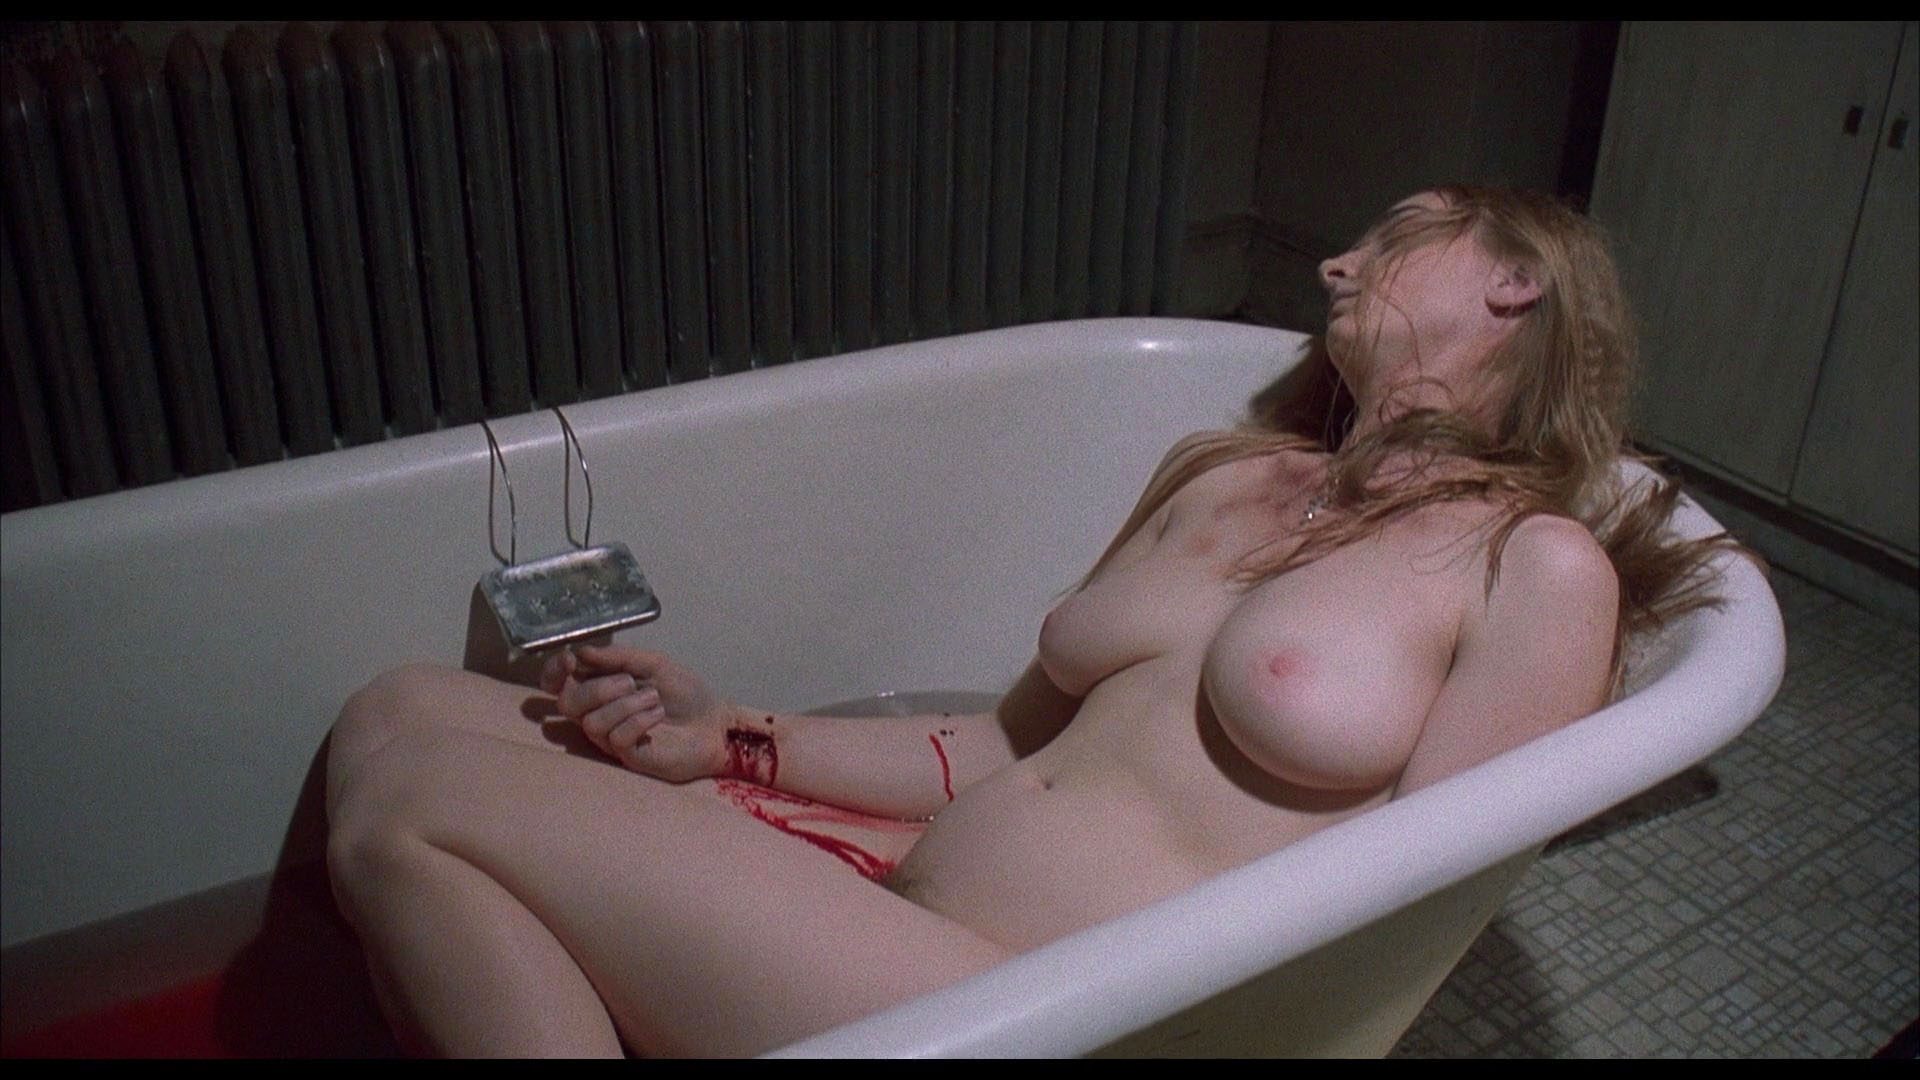 Joy E. Gregory nude - Blink (1993)